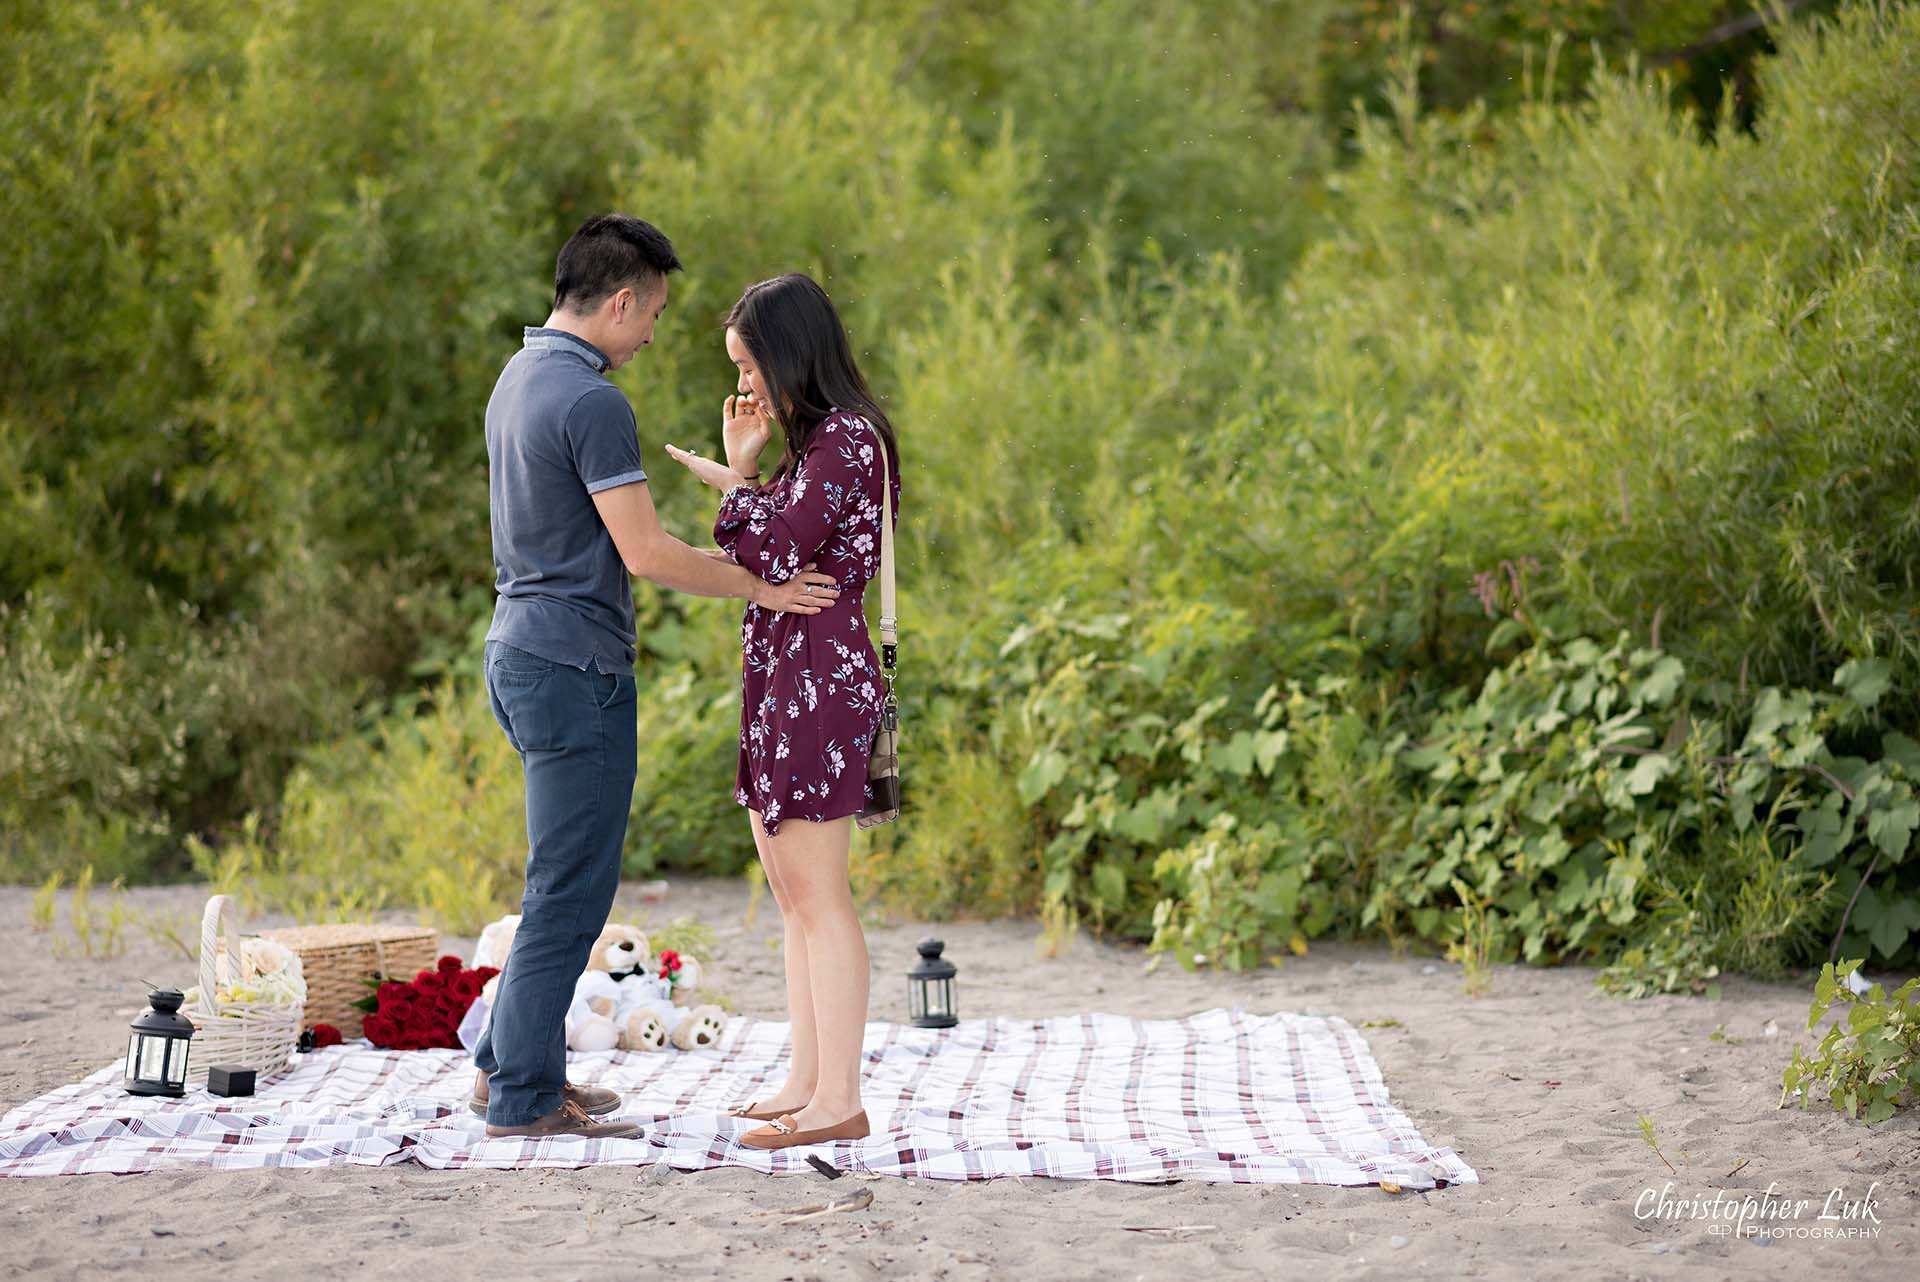 Christopher Luk Toronto Photographer Scarborough Bluffs Beach Park Sunset Surprise Wedding Marriage Engagement Proposal Candid Natural Photojournalistic Bride Groom Picnic Blanket Basket She Said Yes Engaged Ring on Finger